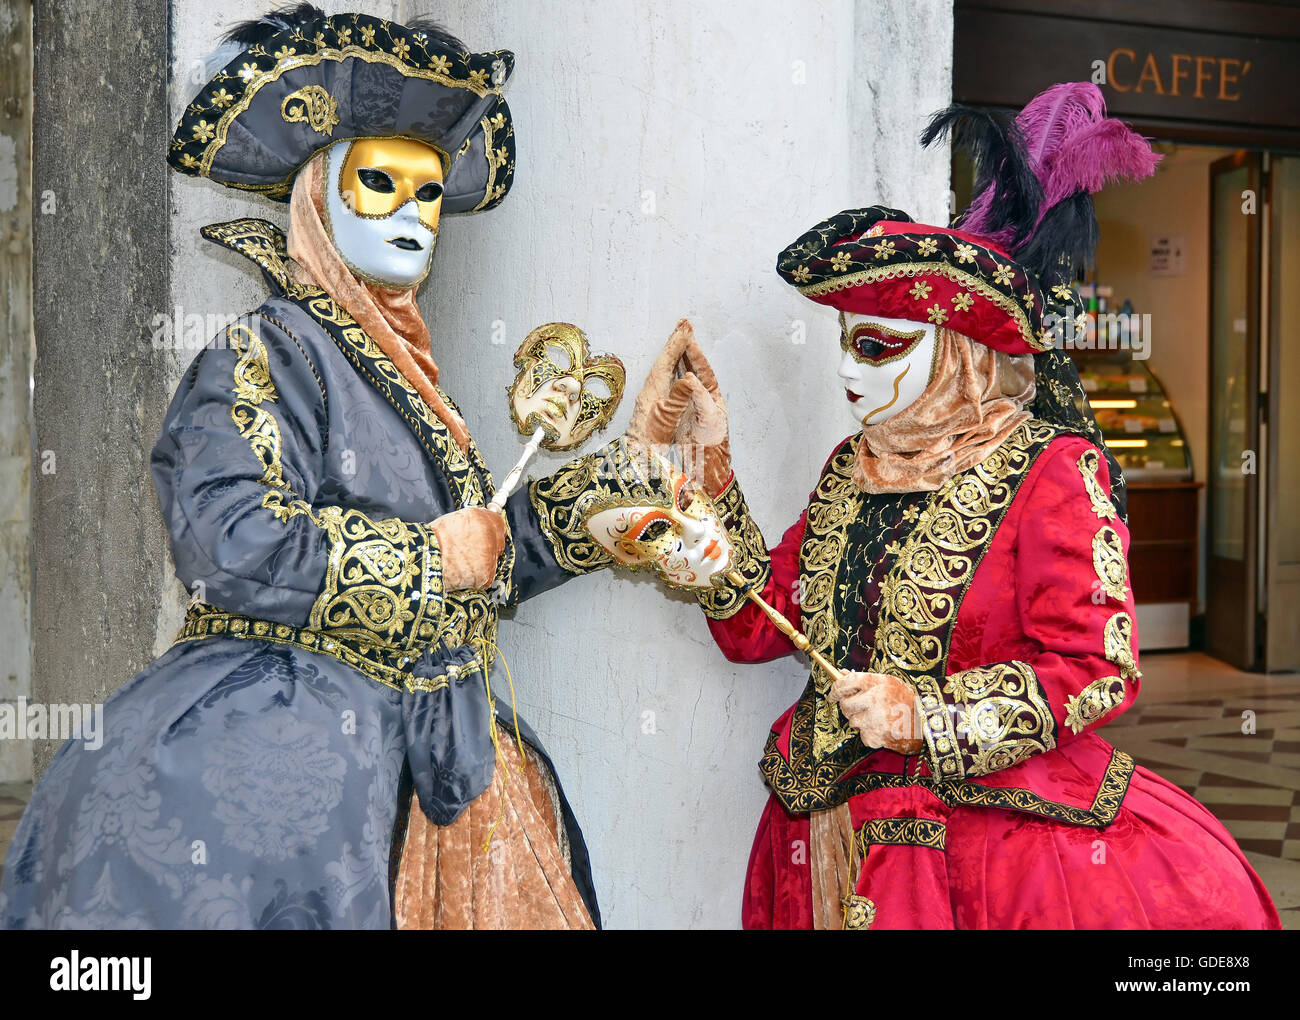 VENICE,ITALY - Two costumed ladies touching hands at the 2015 Venice Carnival: - Stock Image